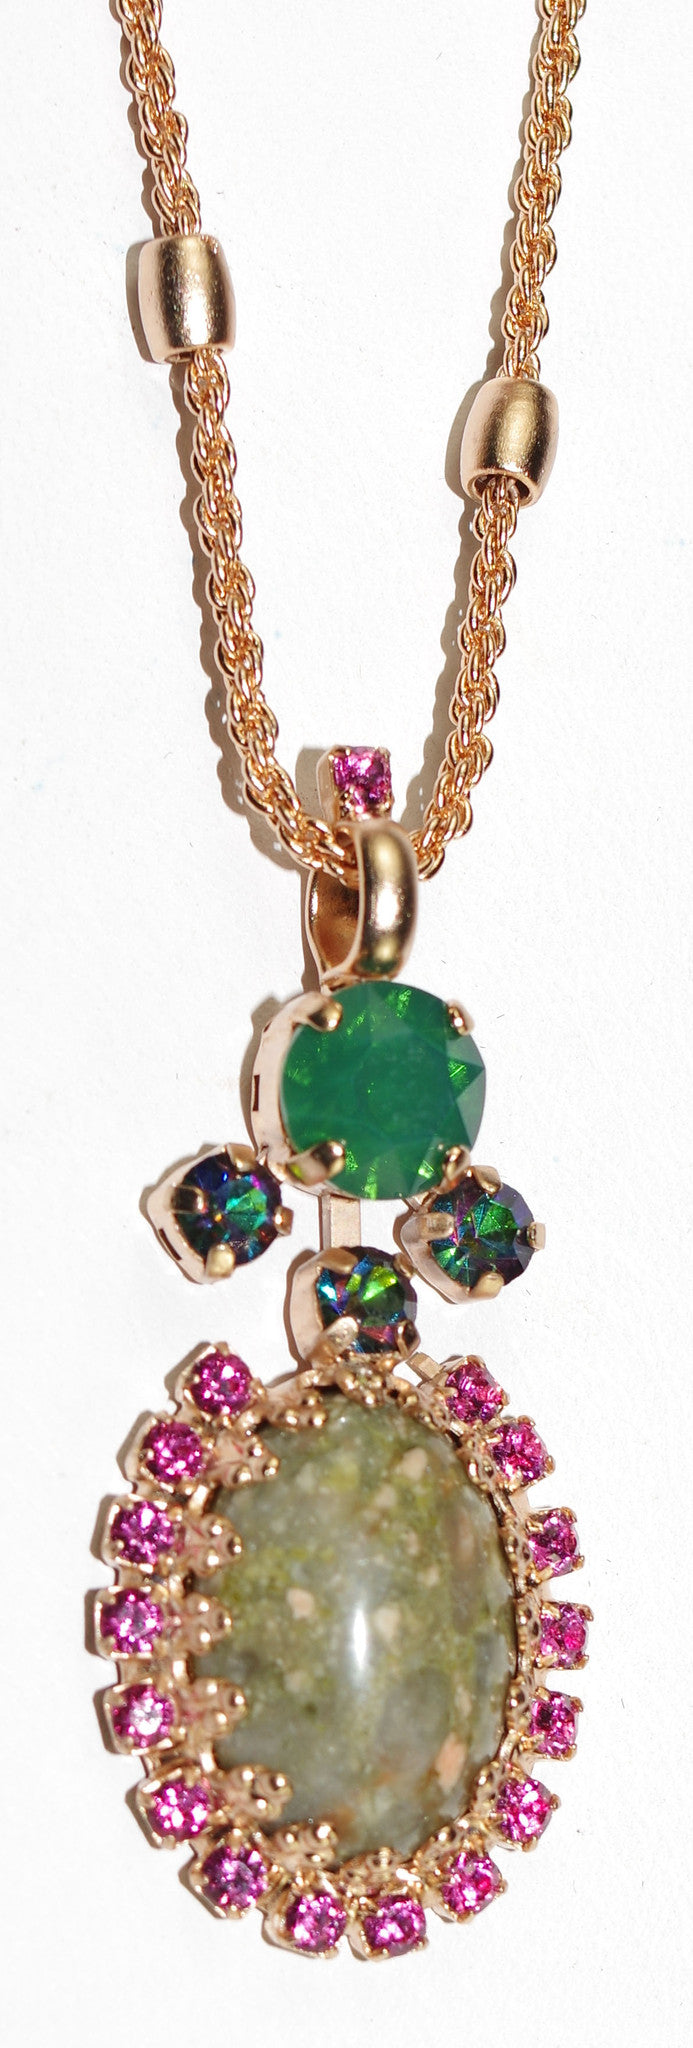 "MARIANA PENDANT LUCK: green, pink stones in rose gold setting, 20"" adjustable chain"